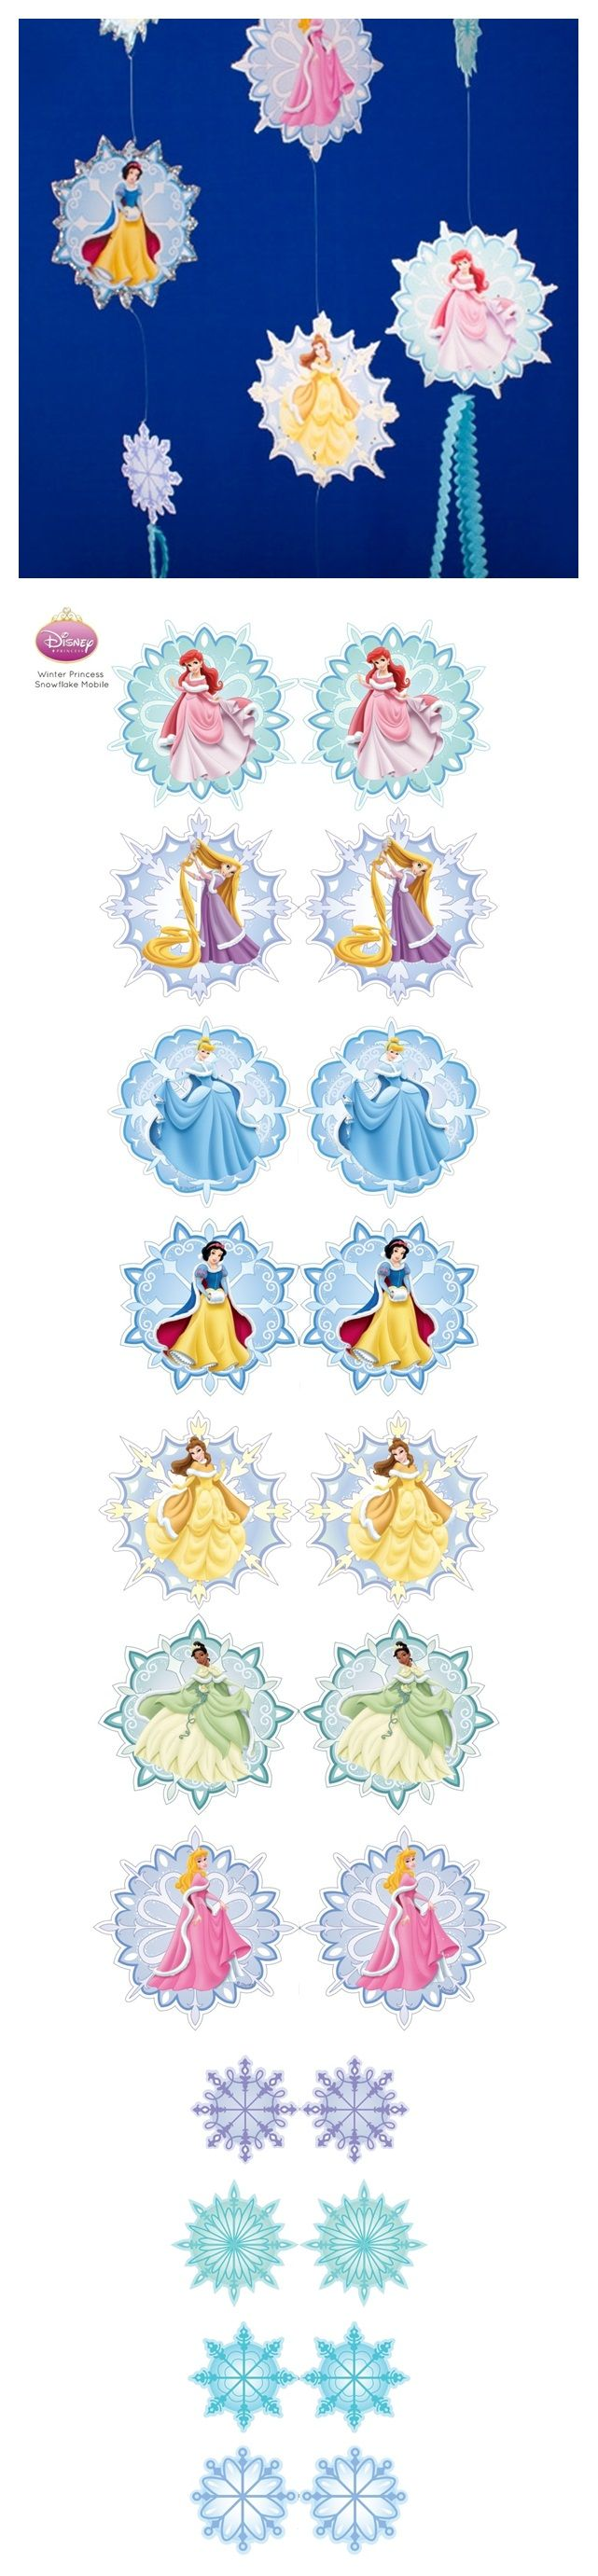 These would be great for window decorations for the resort window!